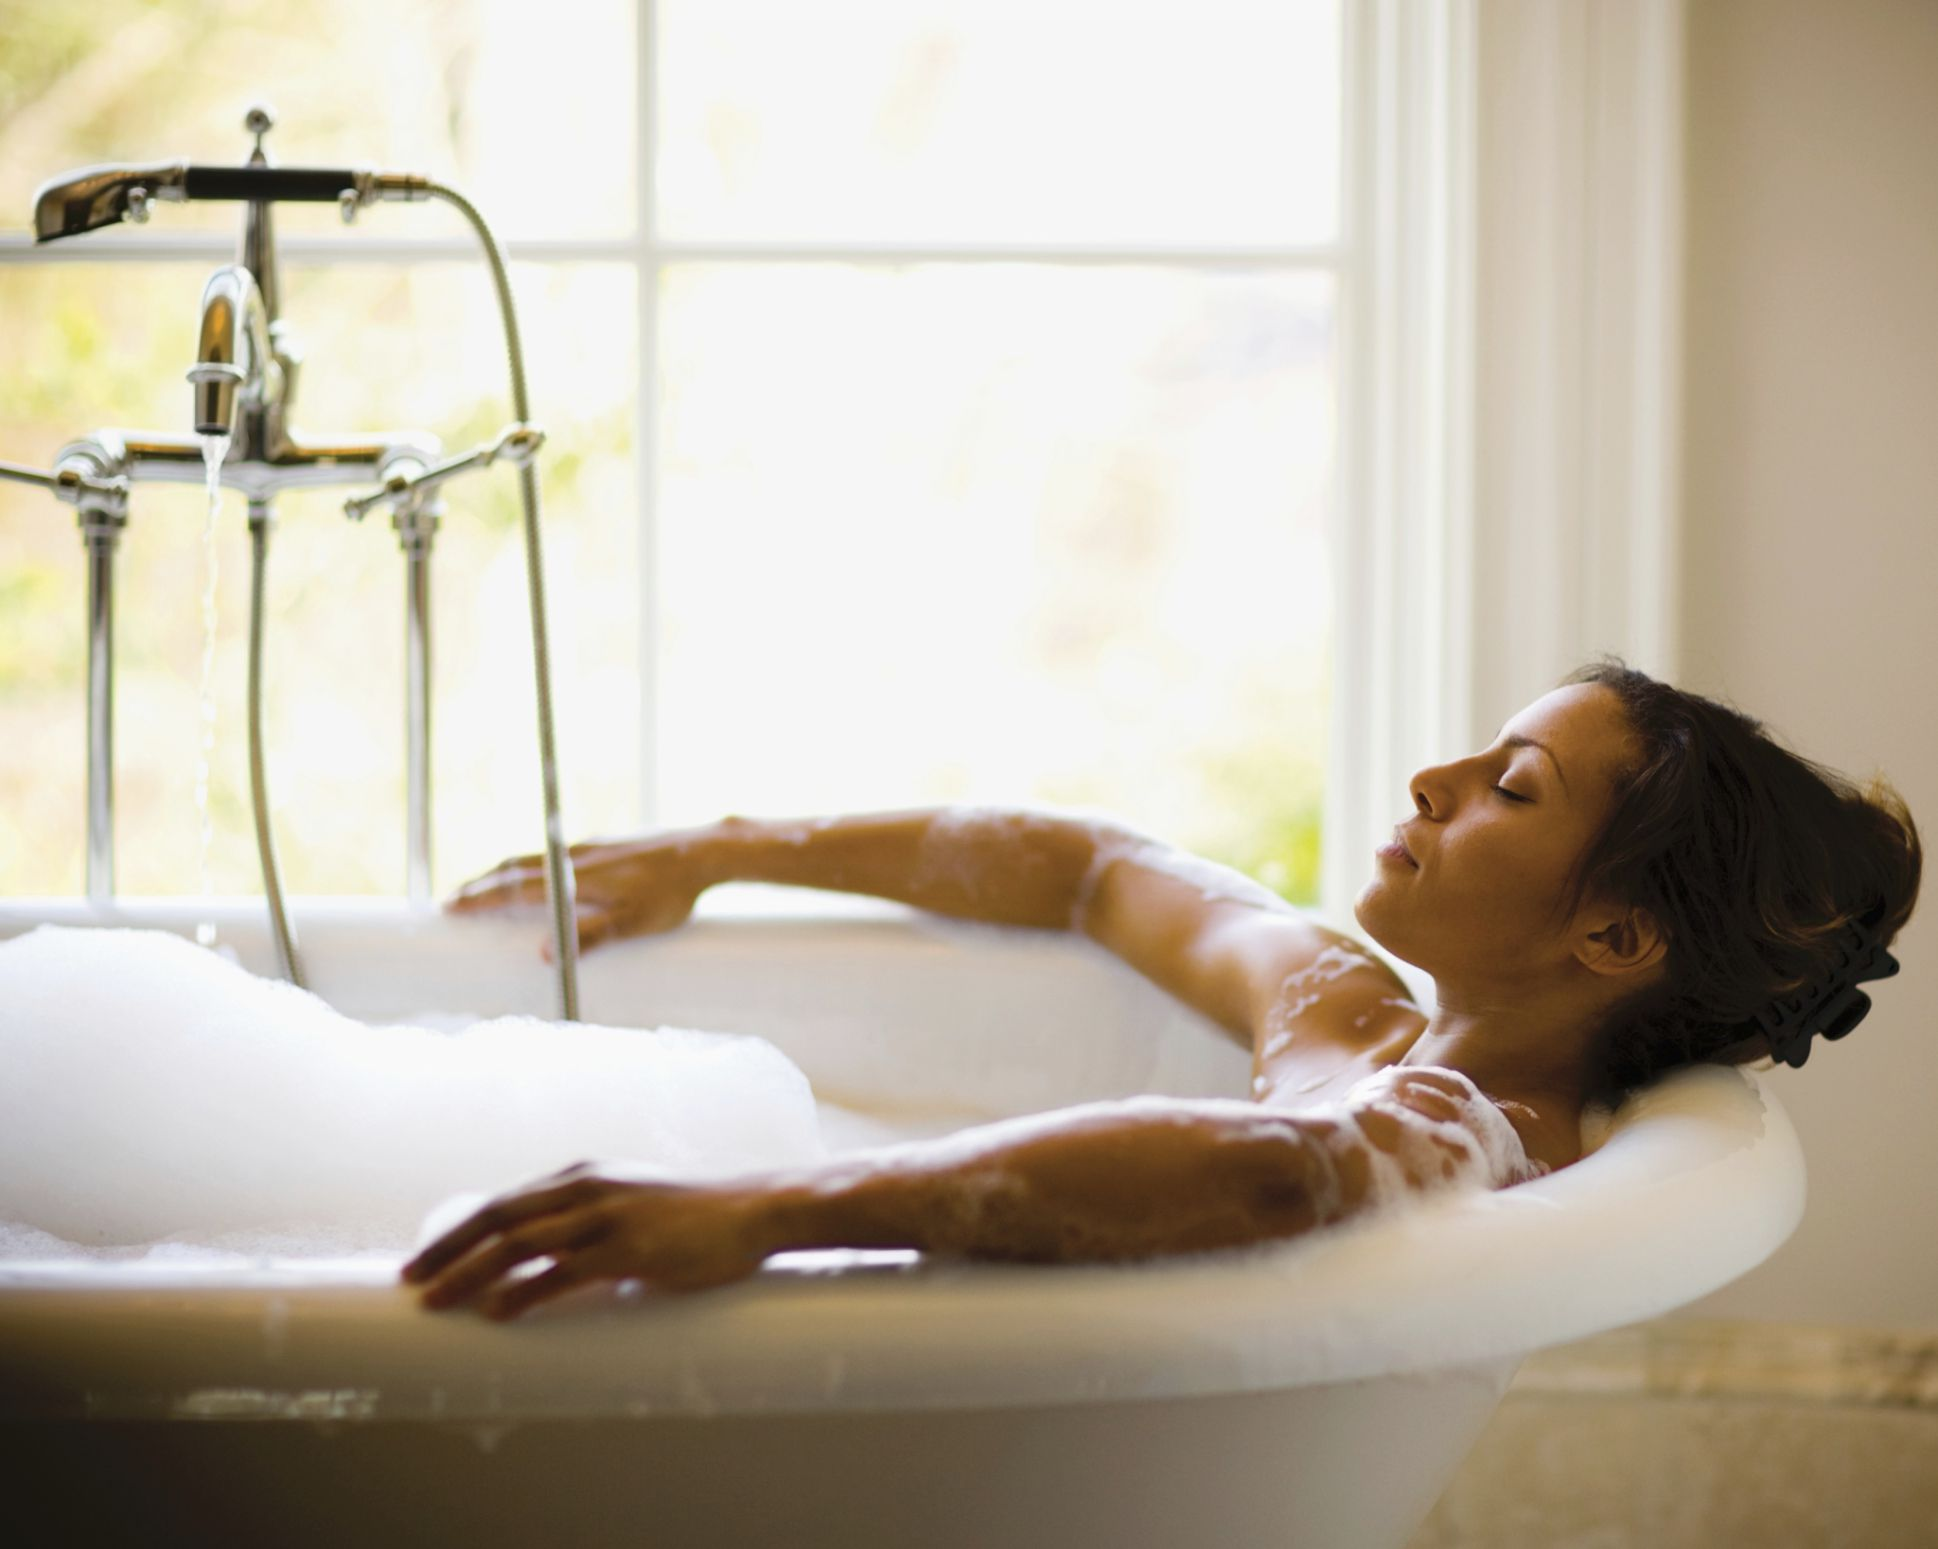 Soothe Your Skin by Making Your Own Oatmeal Bath